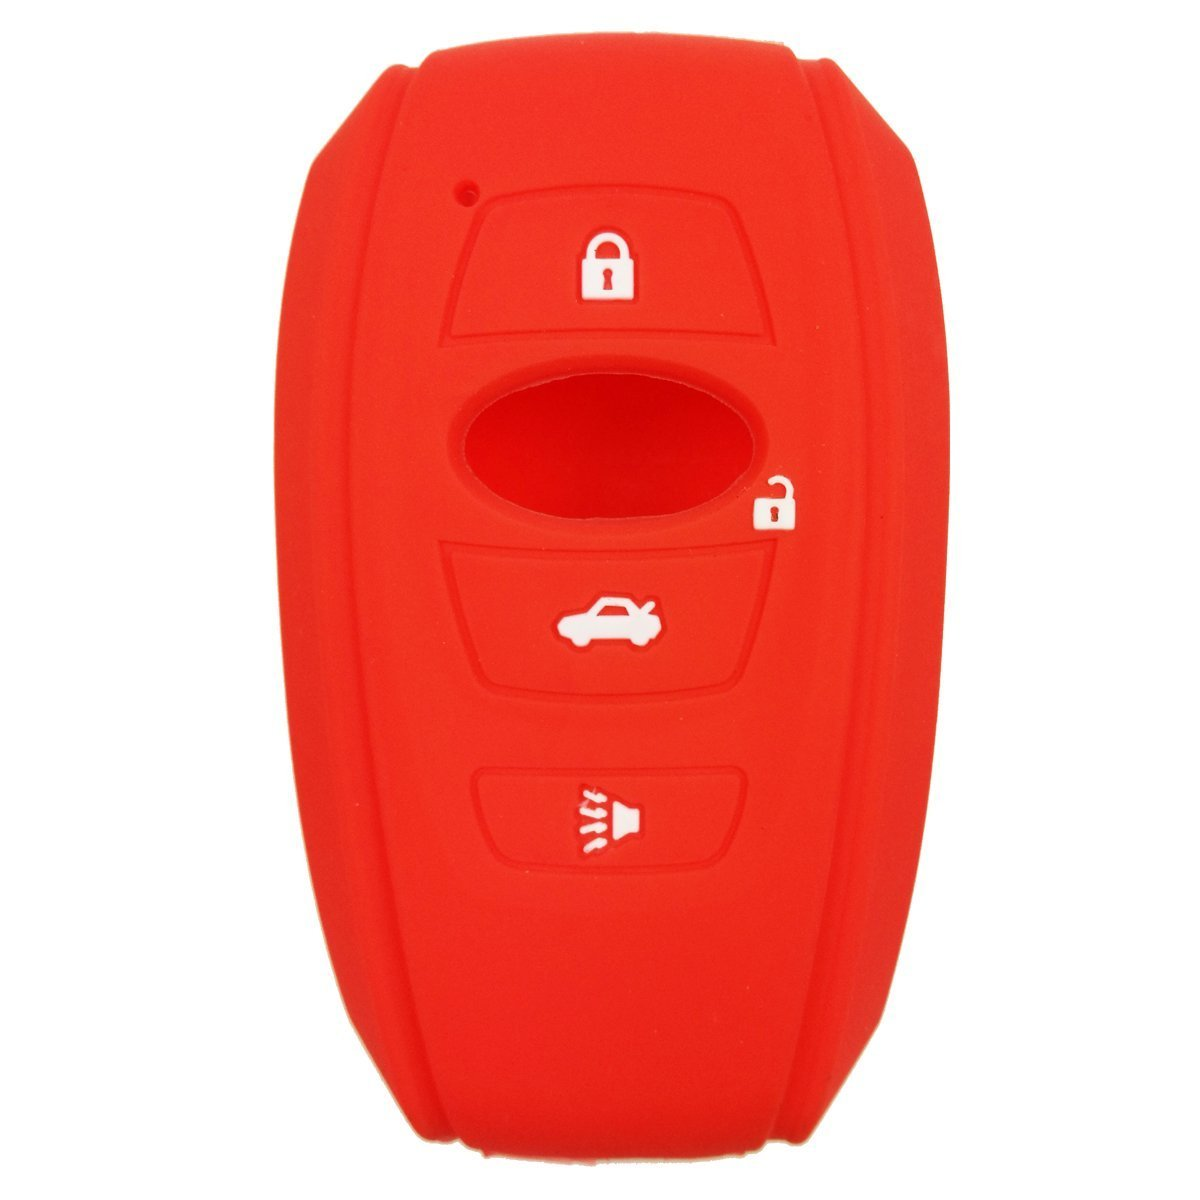 Silicone Rubber 4 Button Protective Smart Key Fob Remote Cover Case Jacket For Subaru